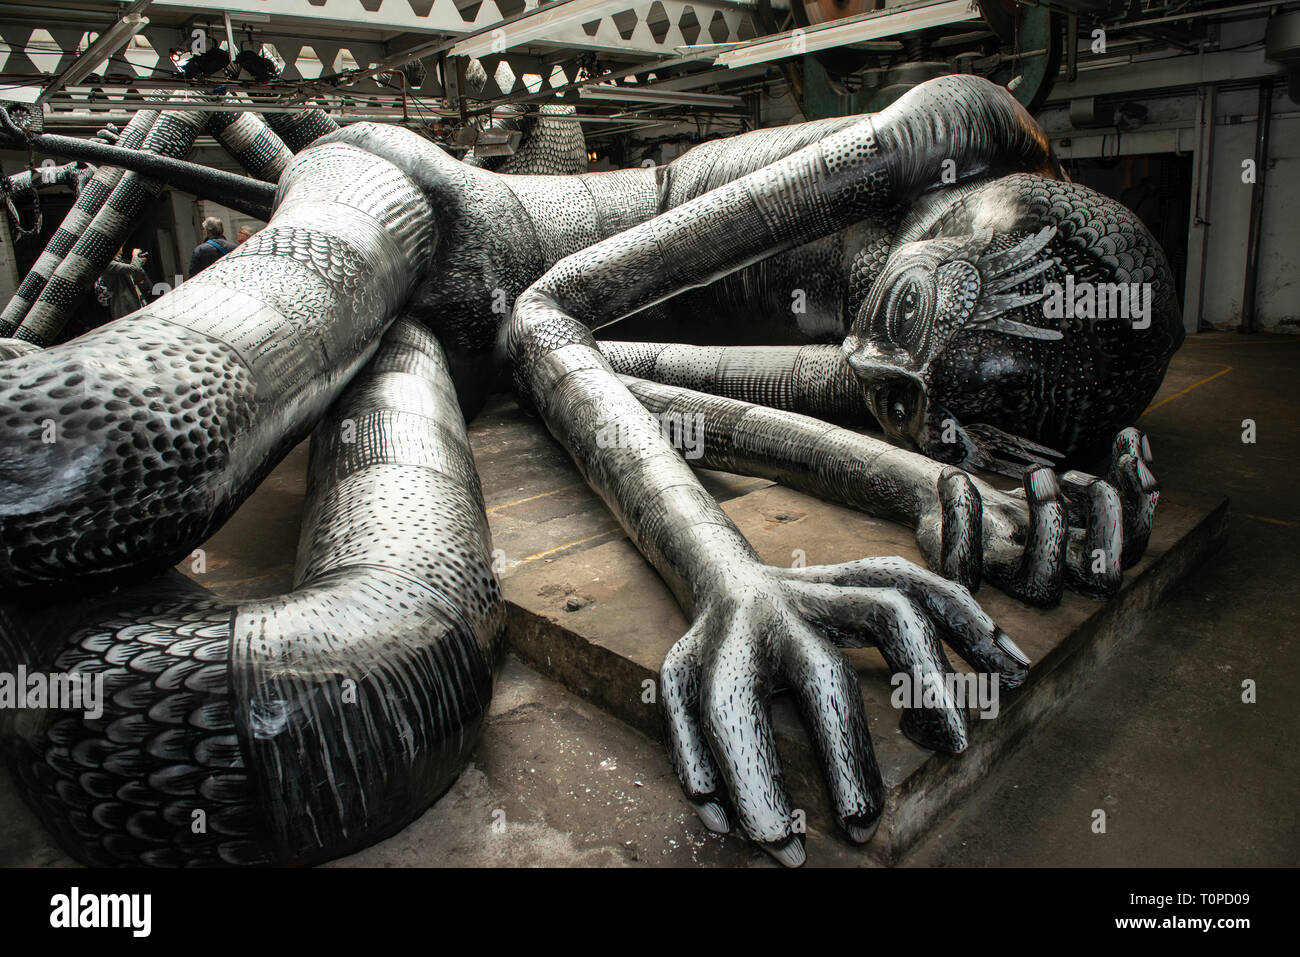 Sheffield, Yorkshire, UK. 21st Mar 2019. Local artist 'Phlegm' is showing his latest creation called 'Mausoleum of the Giants' at the Eye Witness Works, Sheffield until 6th April 2019. Credit: Nigel Greenstreet/Alamy Live News - Stock Image